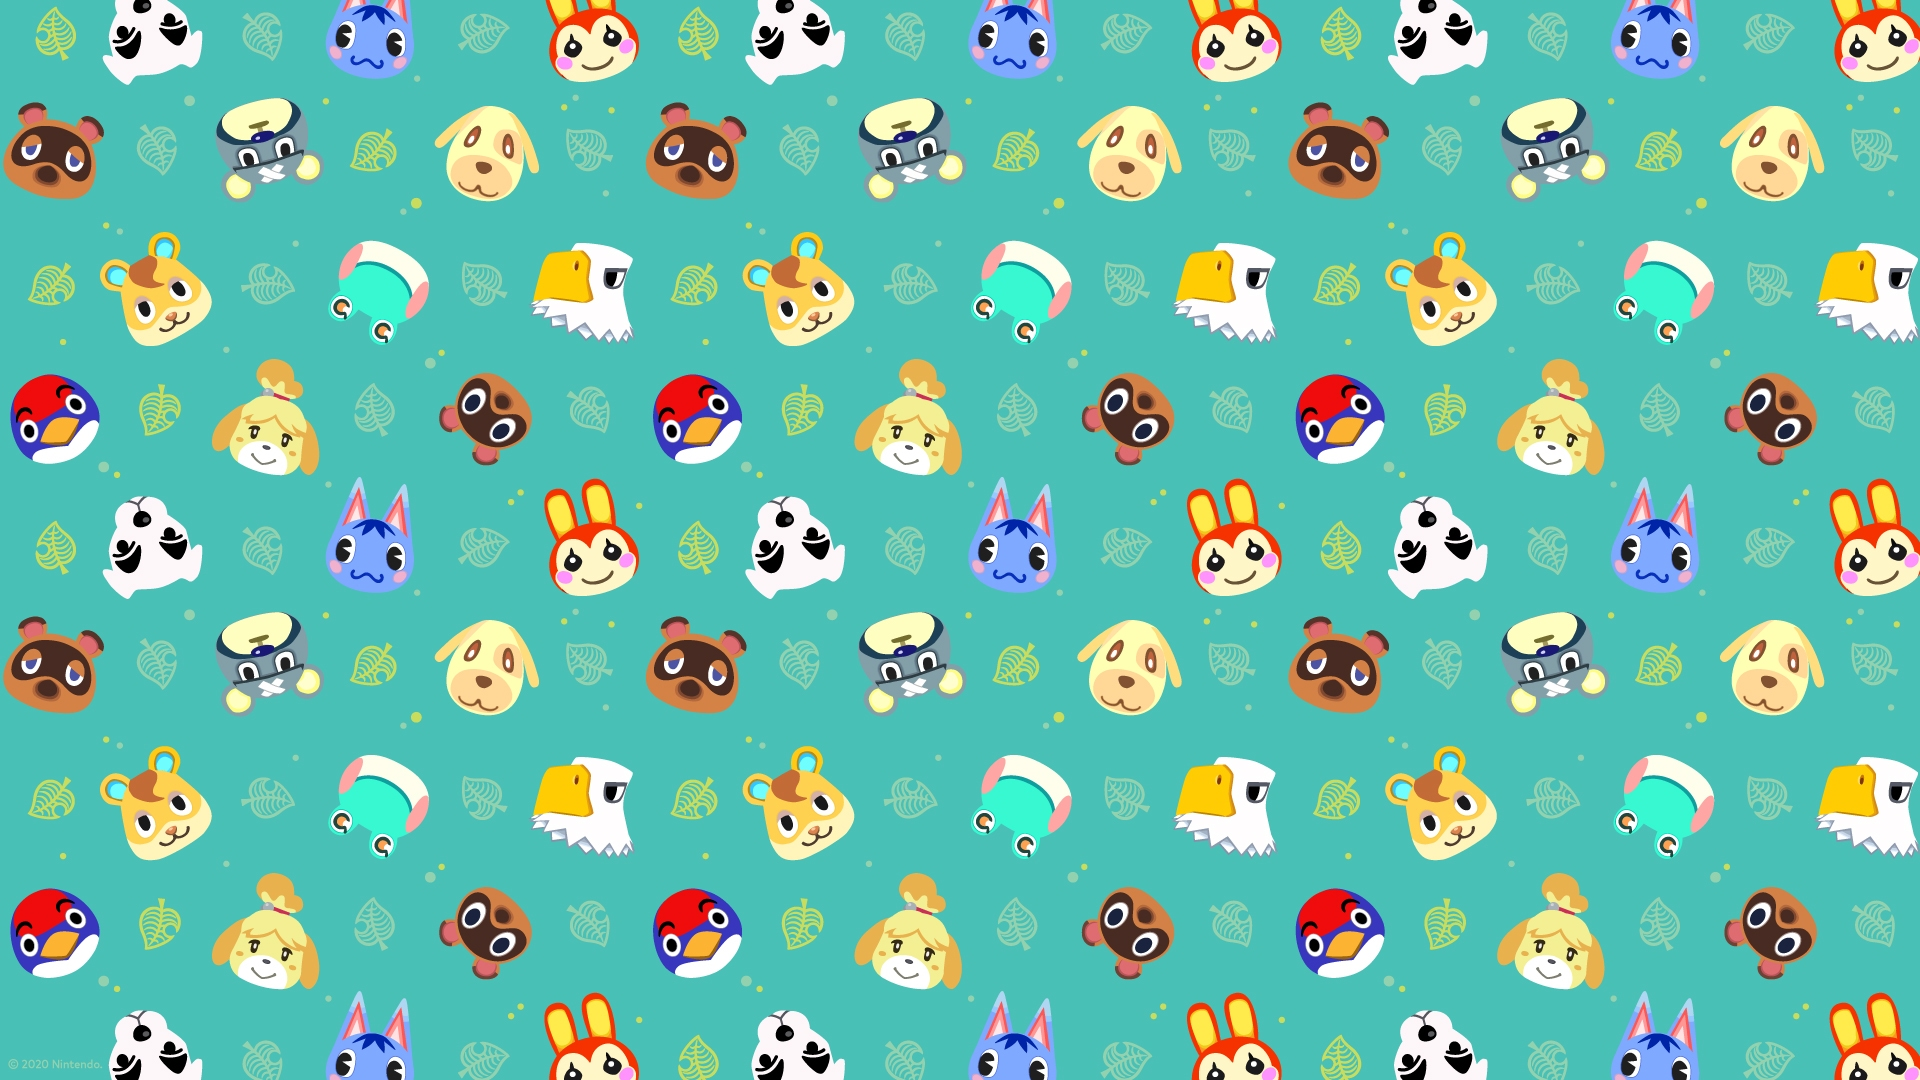 Walmart S Offering Up Some Free Animal Crossing New Horizons Desktop Wallpapers Nintendo Wire